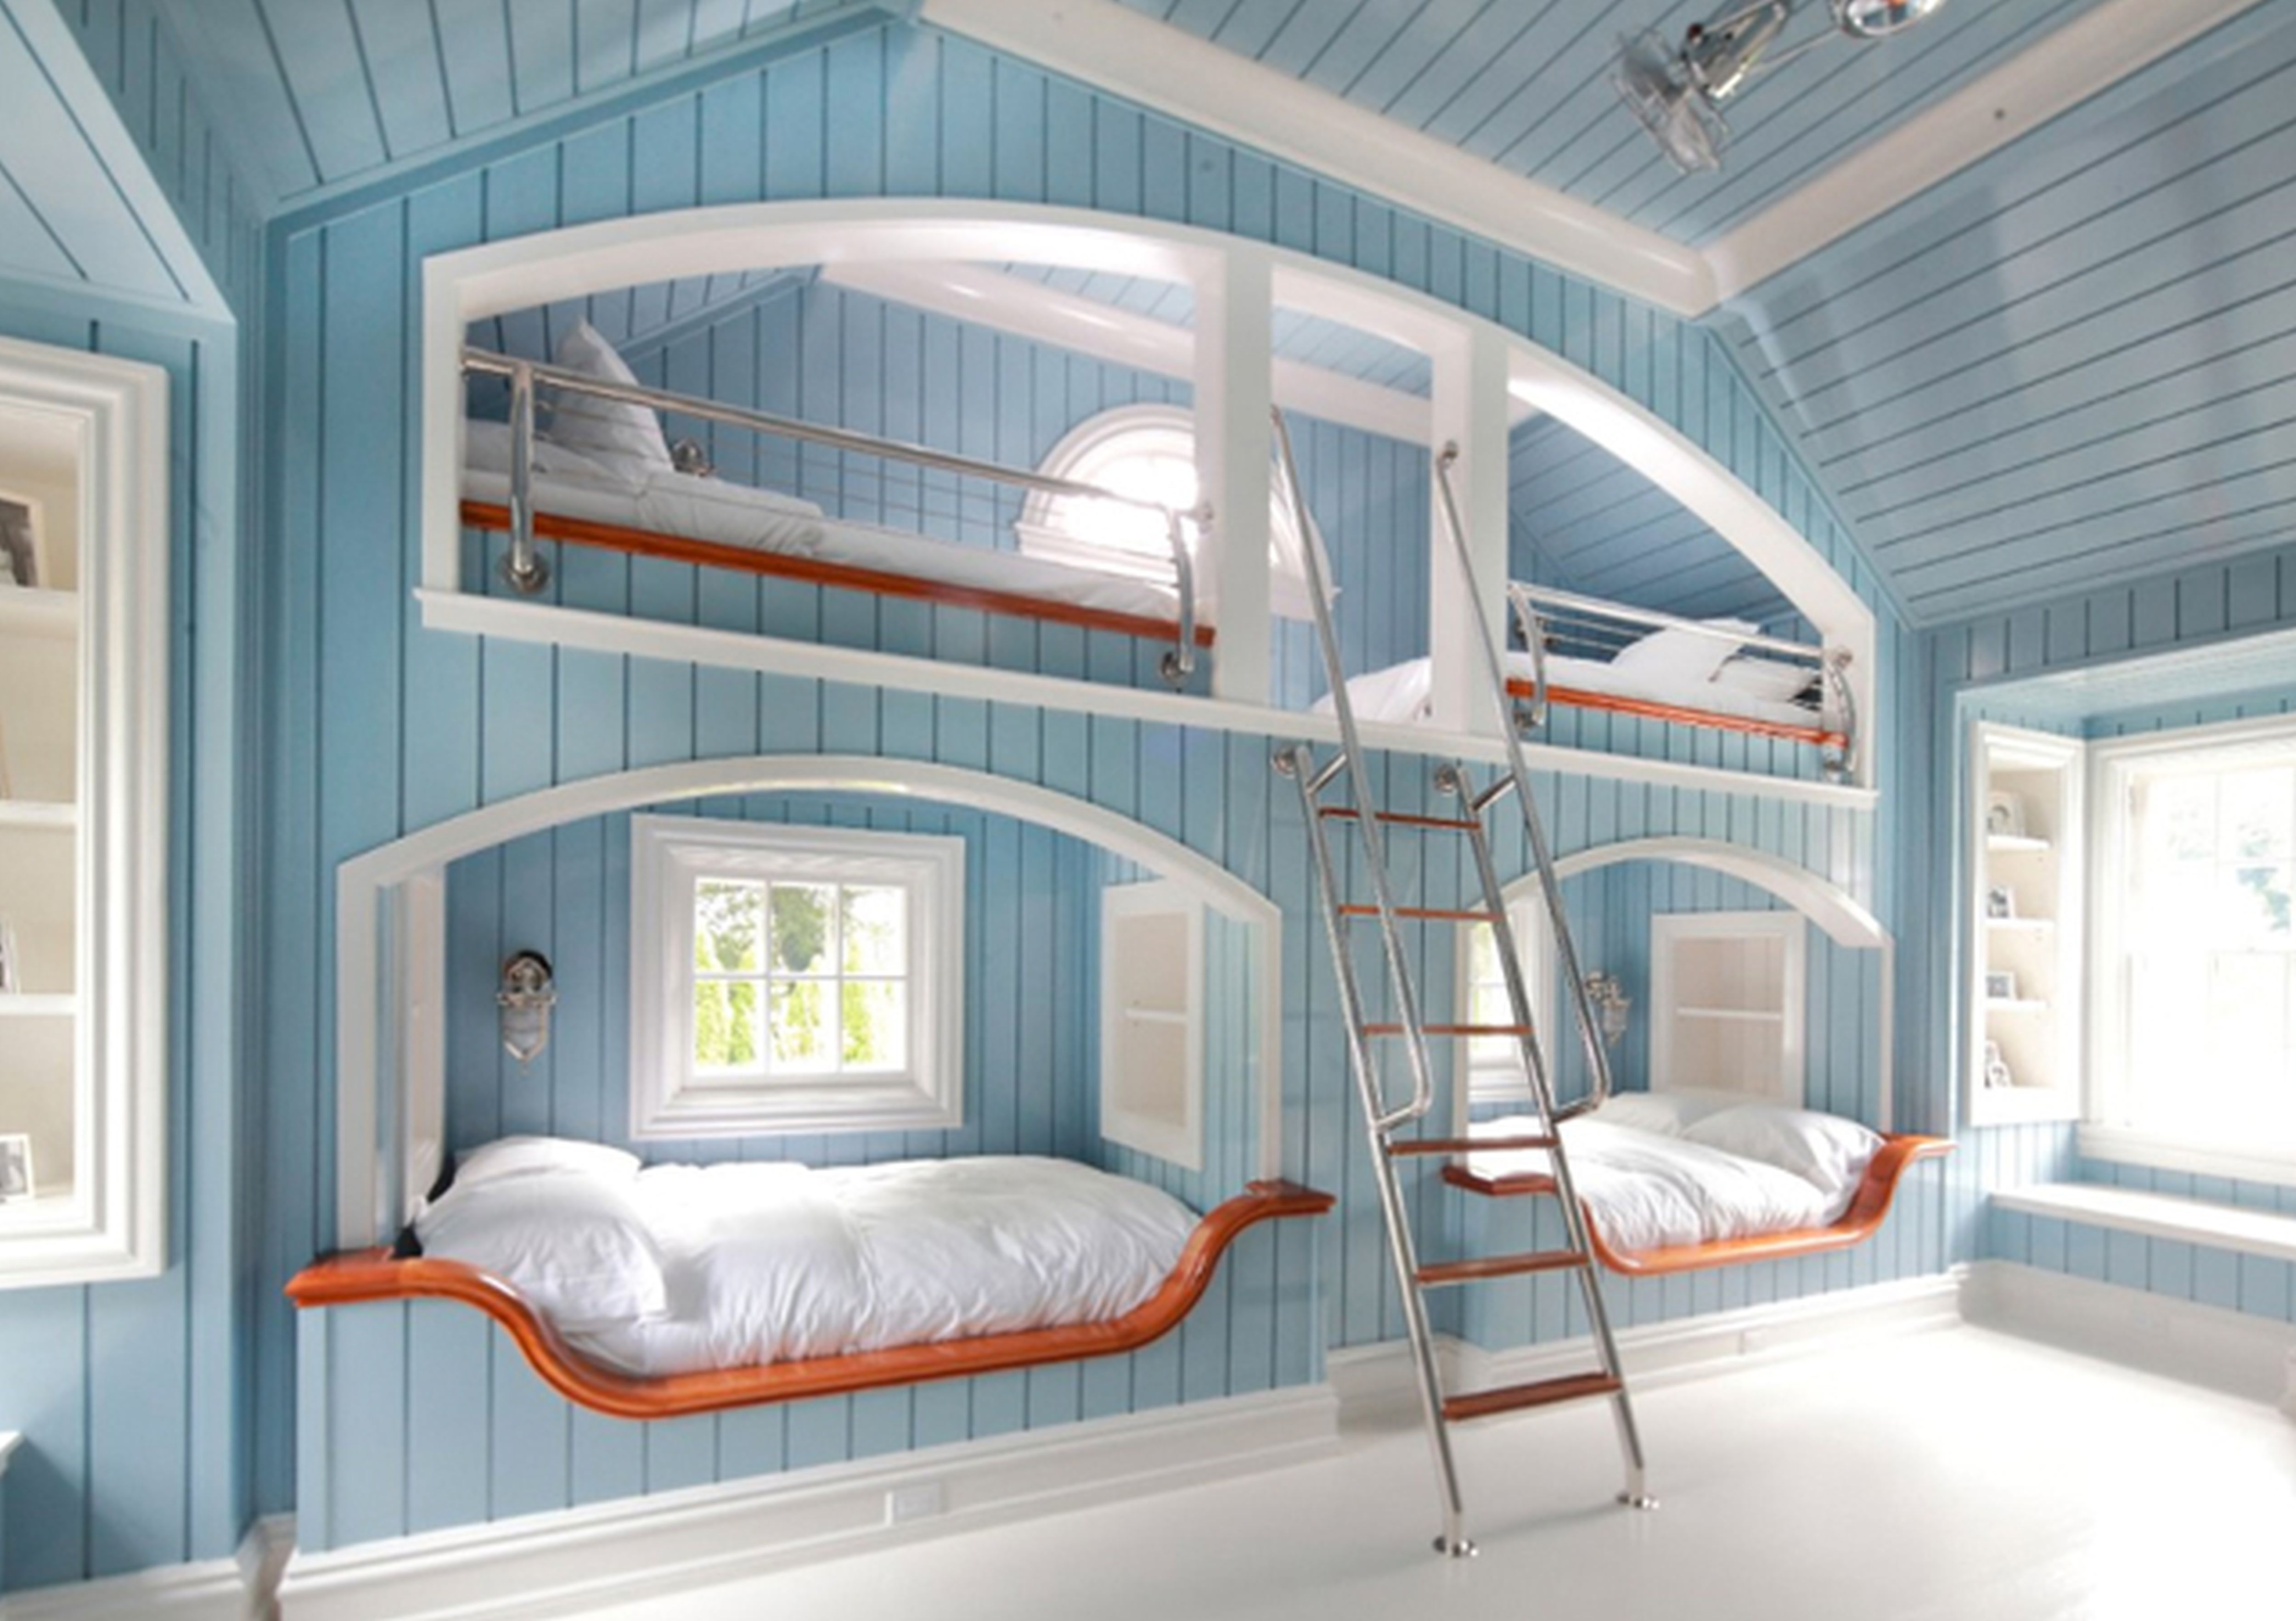 Astonishing Design Of The Blue Wooden Wall Added With White Floor And White Bed As The Teenage Room Ideas